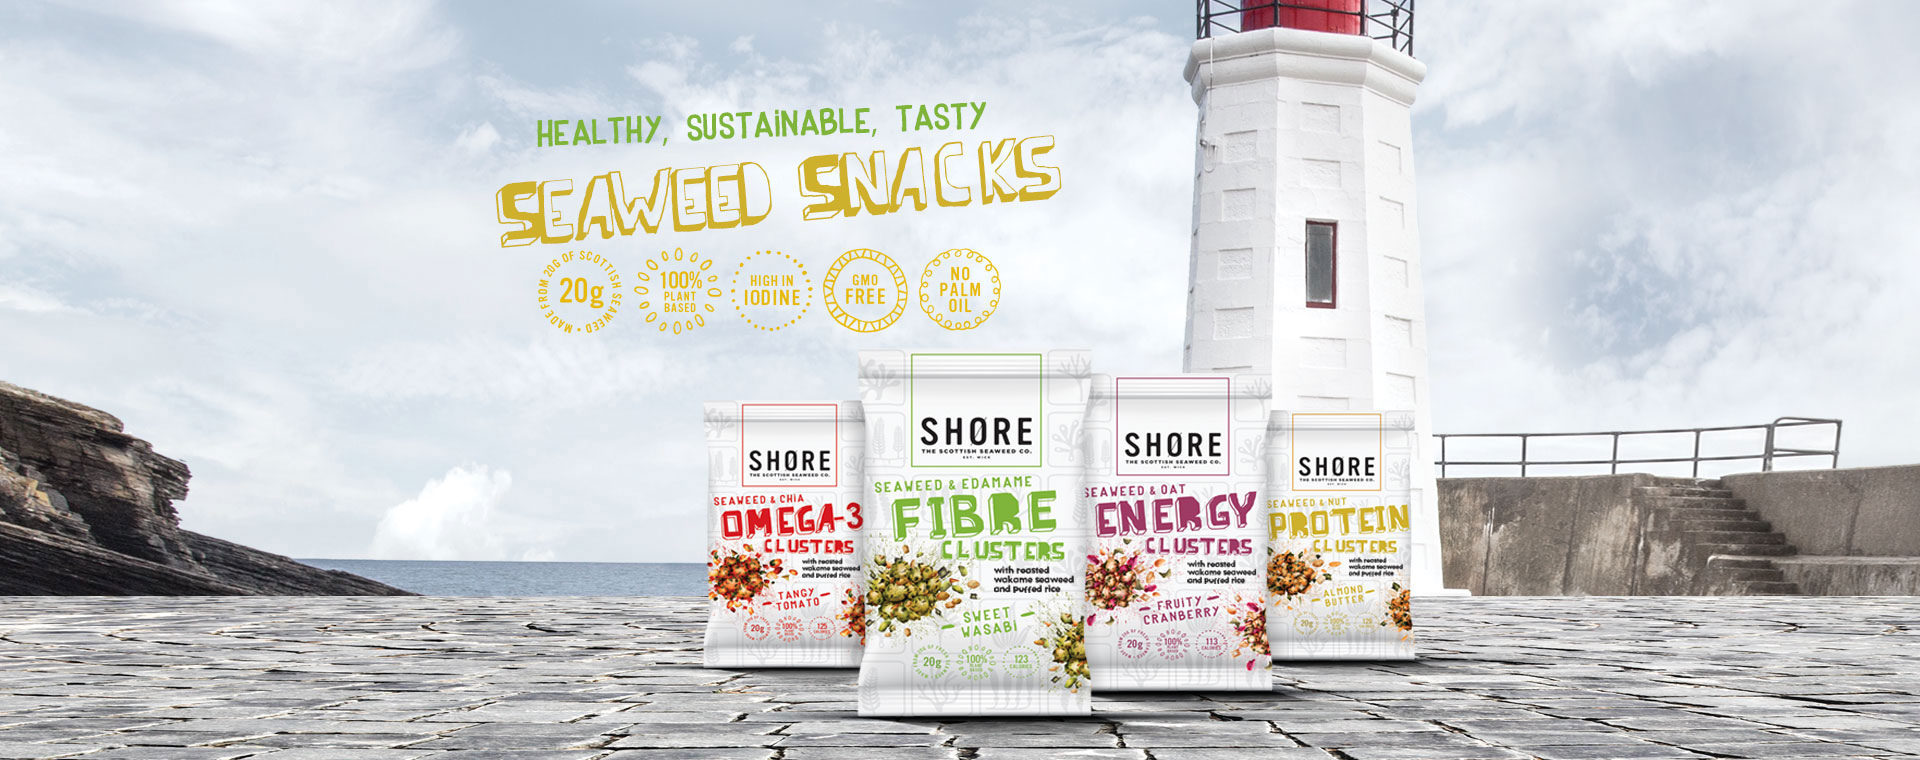 Home-m-Header_Snacks